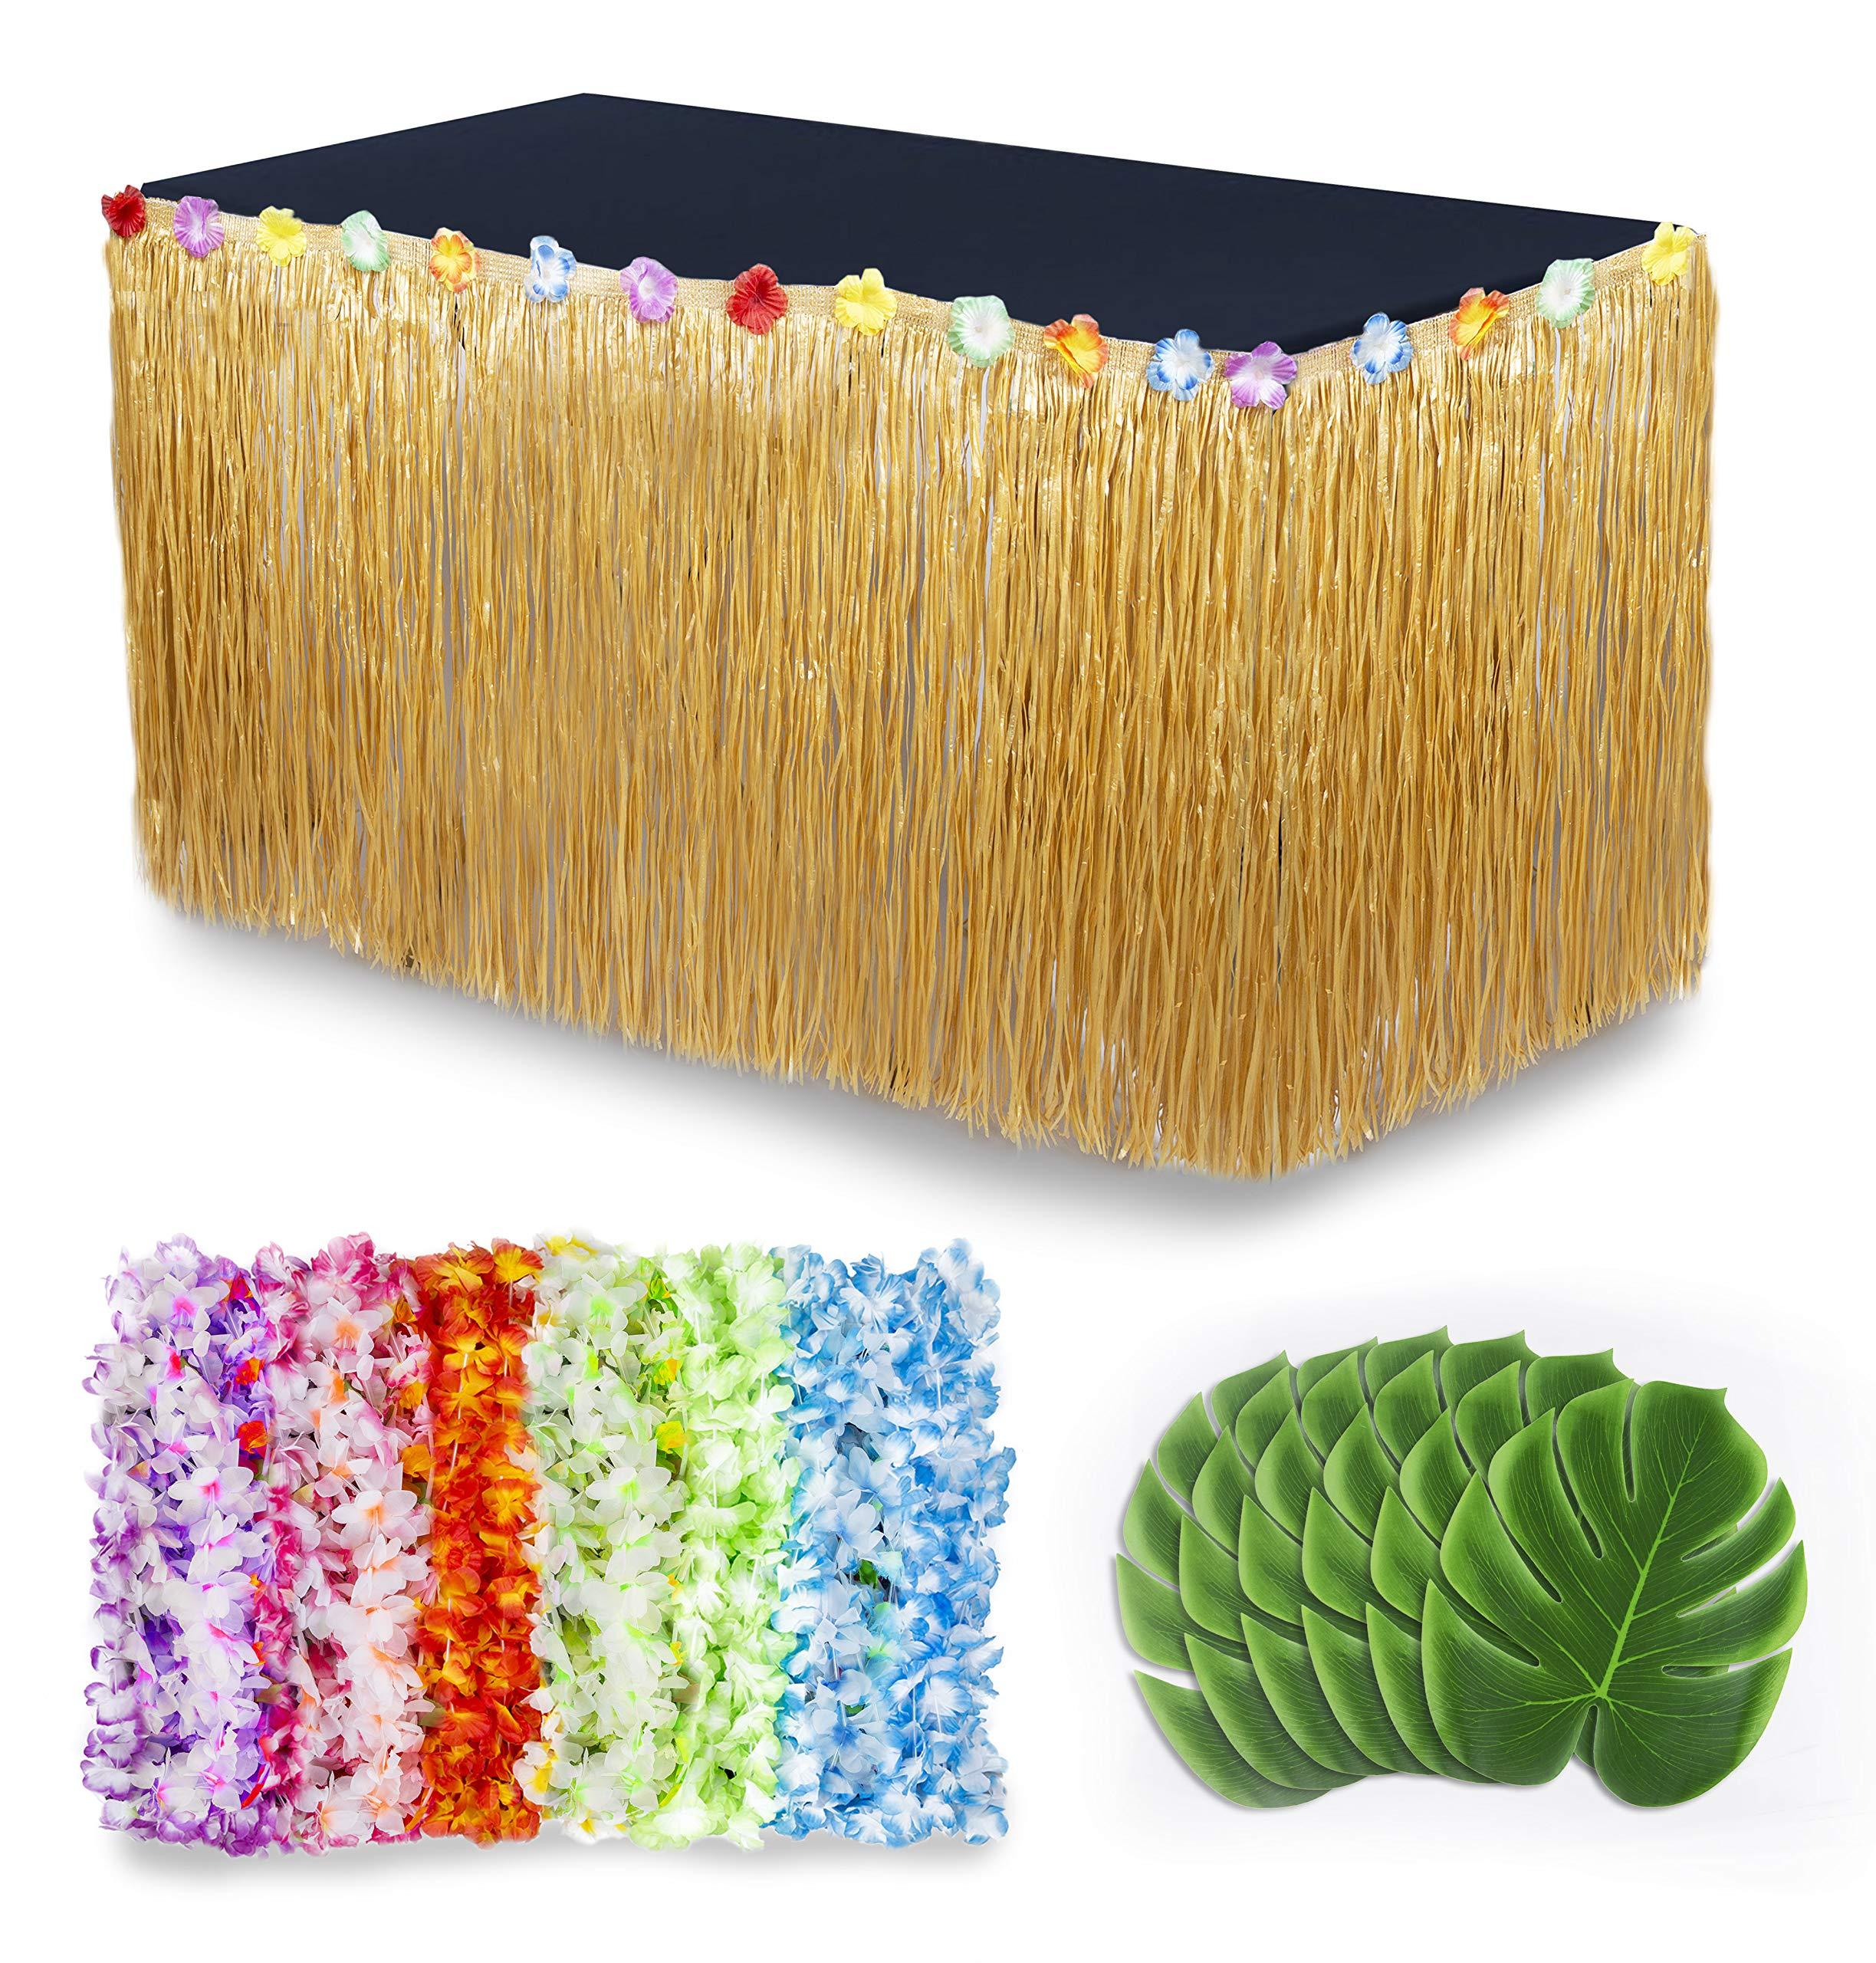 Cocowai Luau Party Decorations/Moana Party Supplies! 36x Flower Hawaiian Leis, Tropical Leaves Decoration and Grass Skirt for Buffet Table - Fun Tiki Bar, Beach Theme or Lilo and Stitch Birthday!